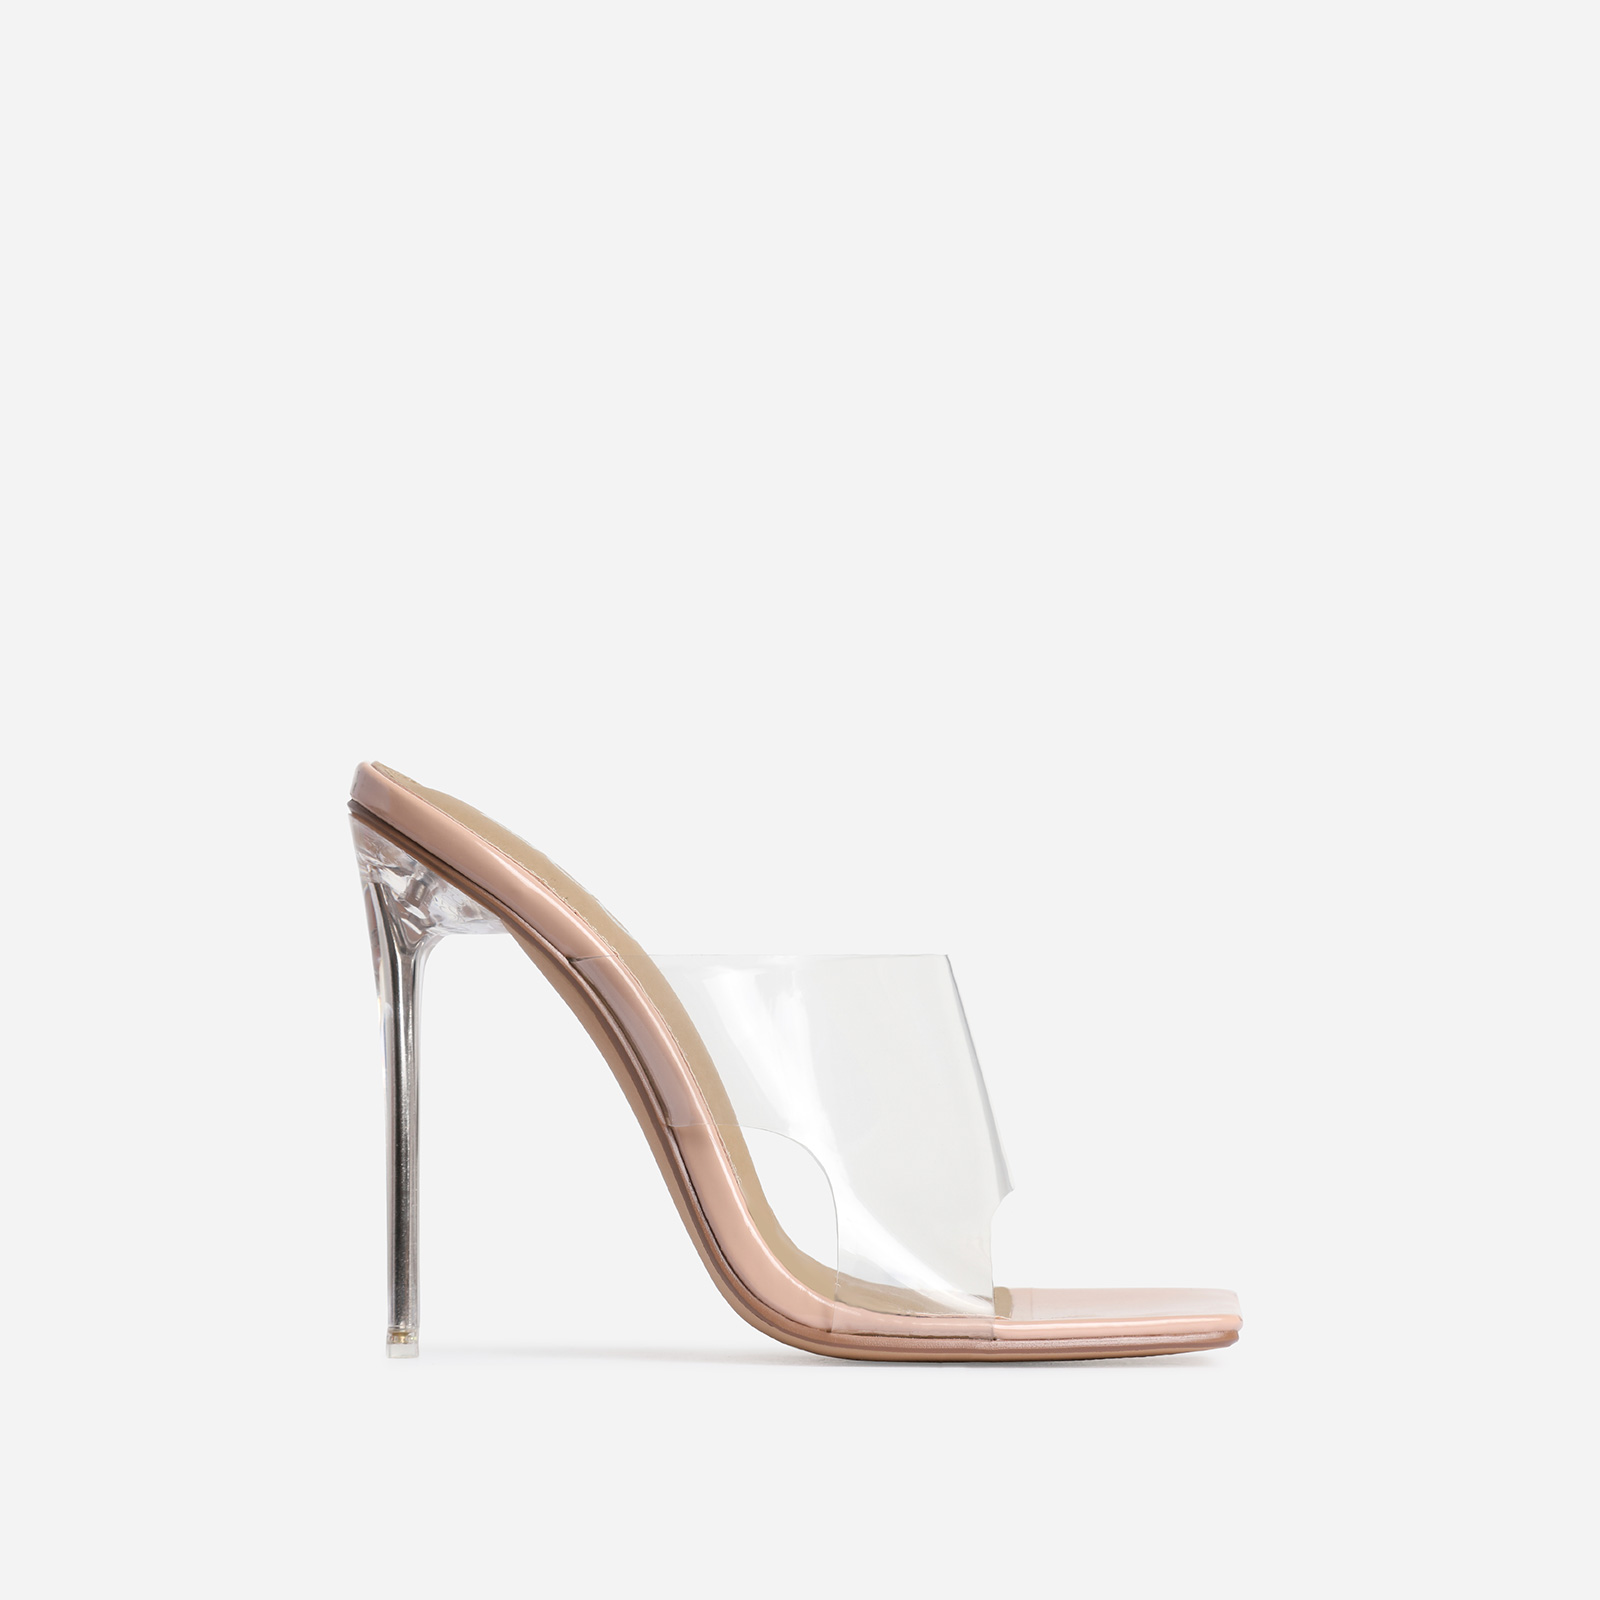 River Clear Perspex Square Peep Toe Heel Mule In Nude Patent